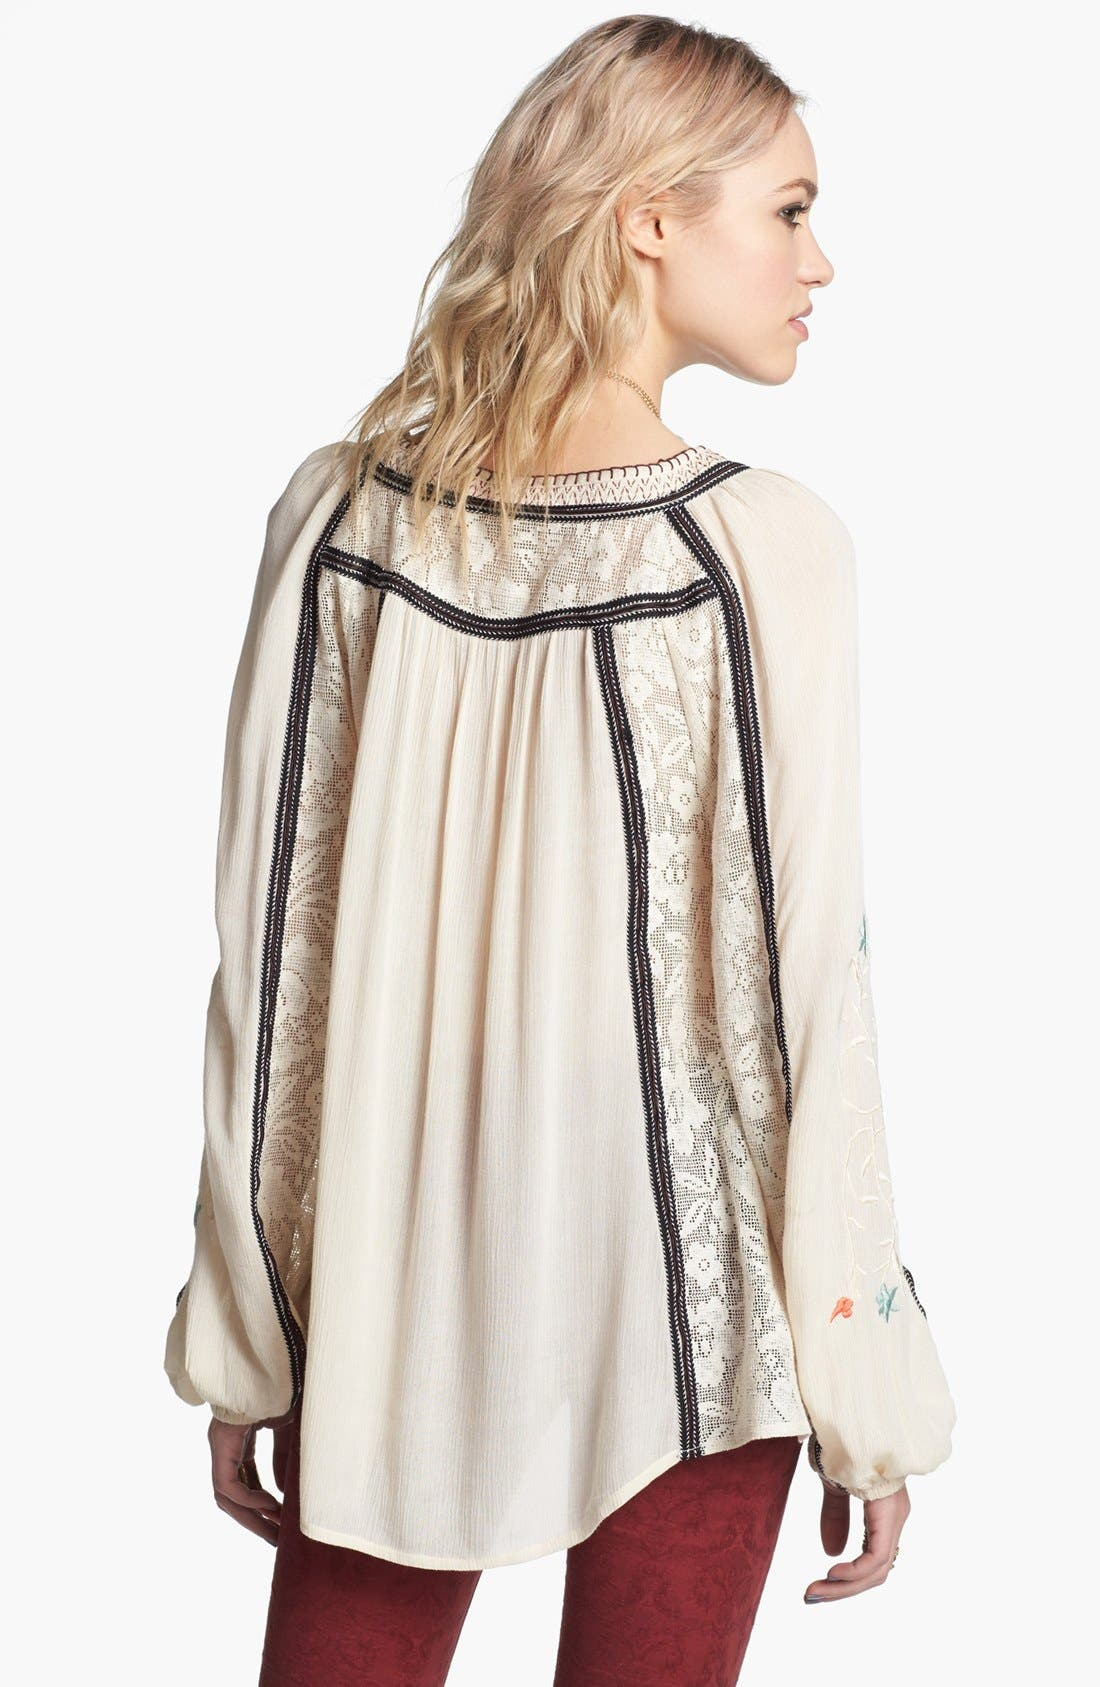 FREE PEOPLE,                             'Tiger Lily' Embroidered Top,                             Alternate thumbnail 4, color,                             900